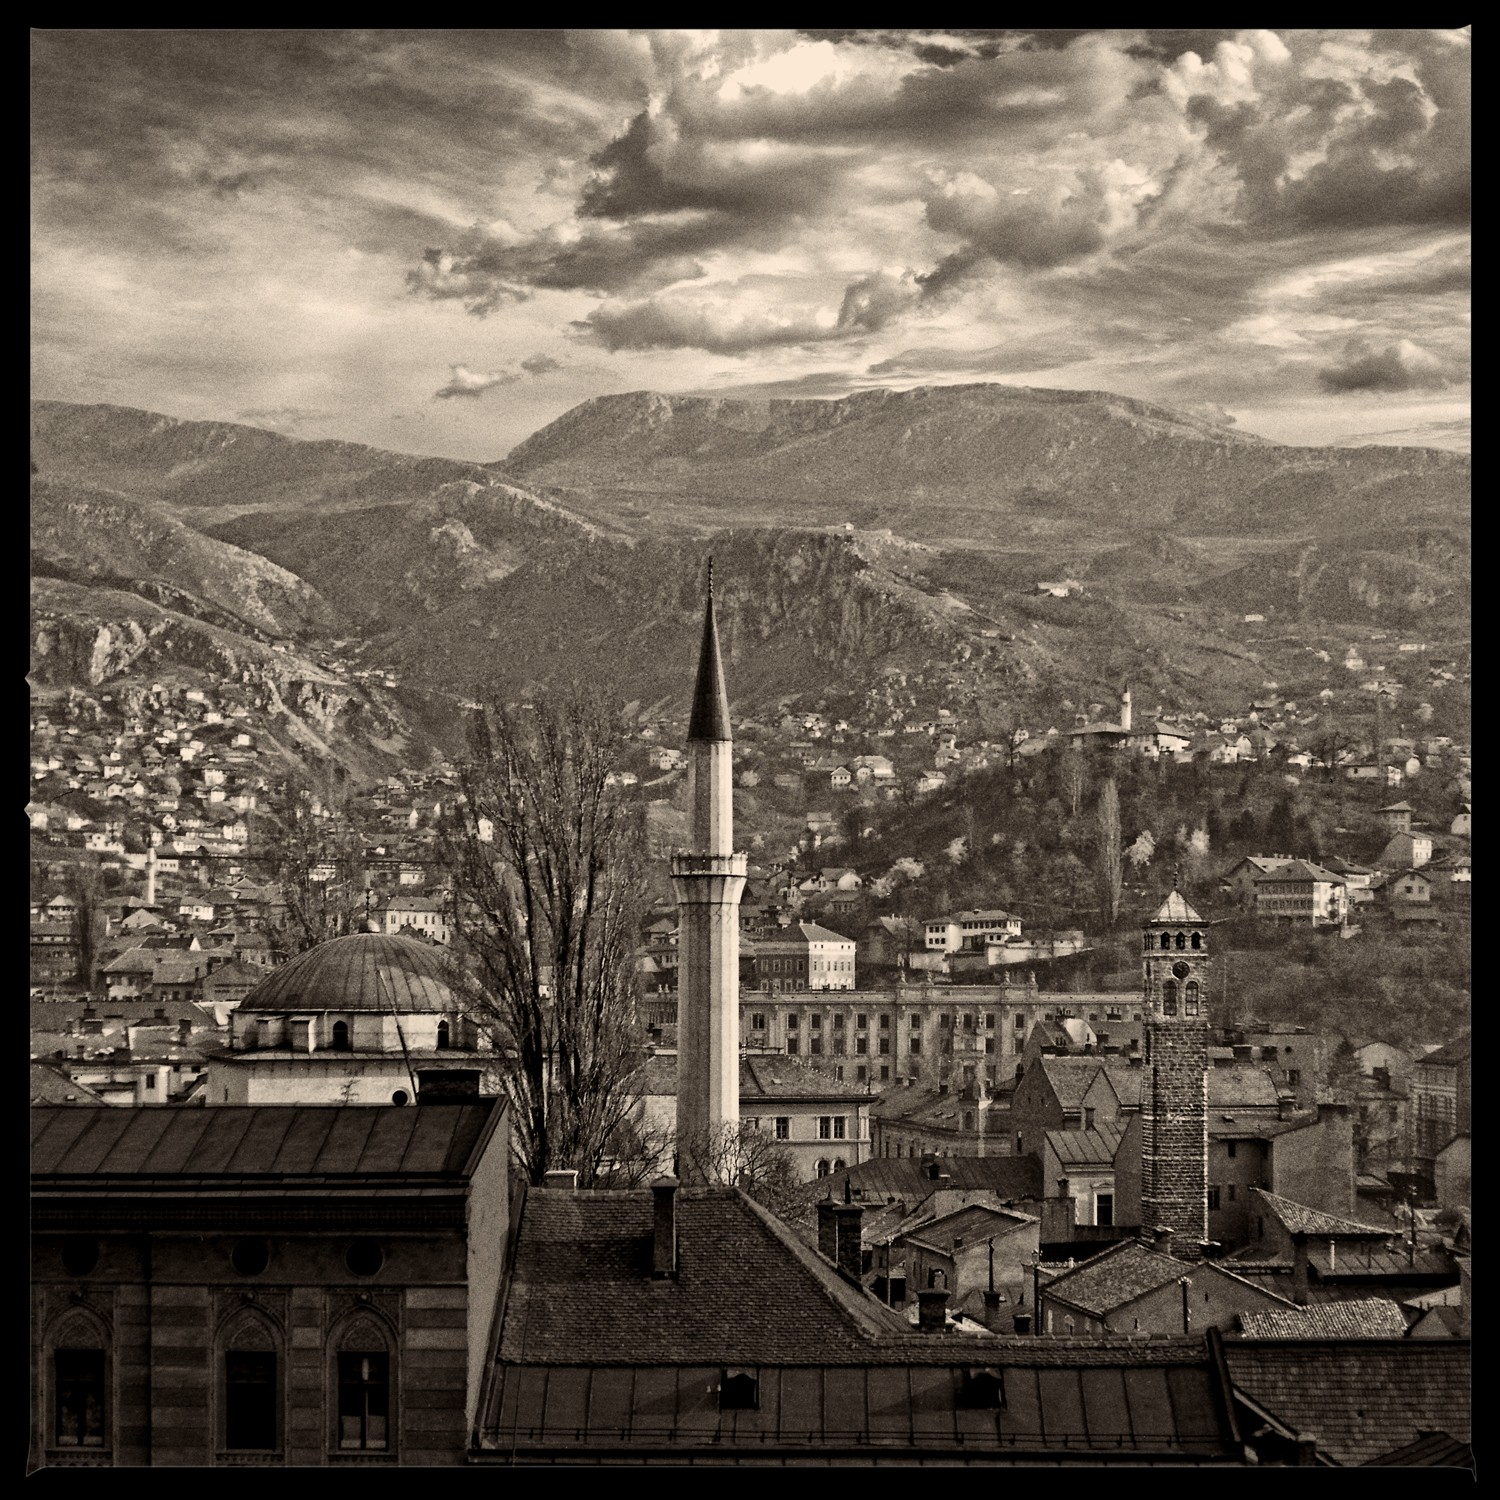 View of Sarajevo's old town from Logavina Ulica I